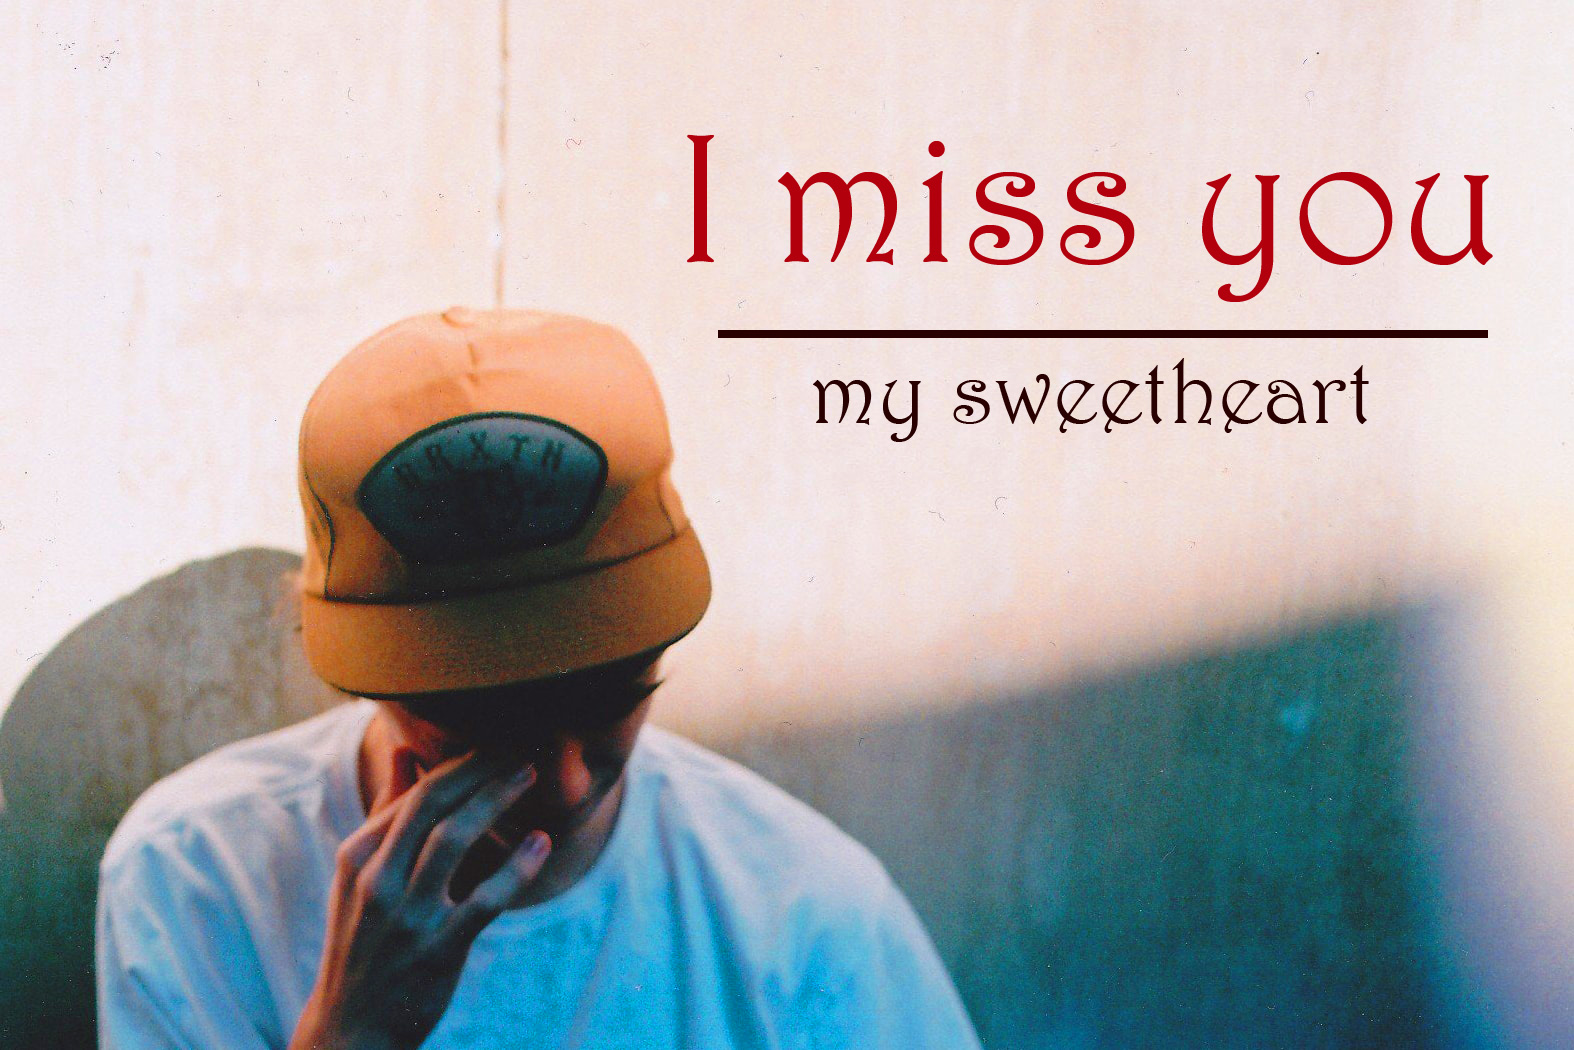 I miss you images Download